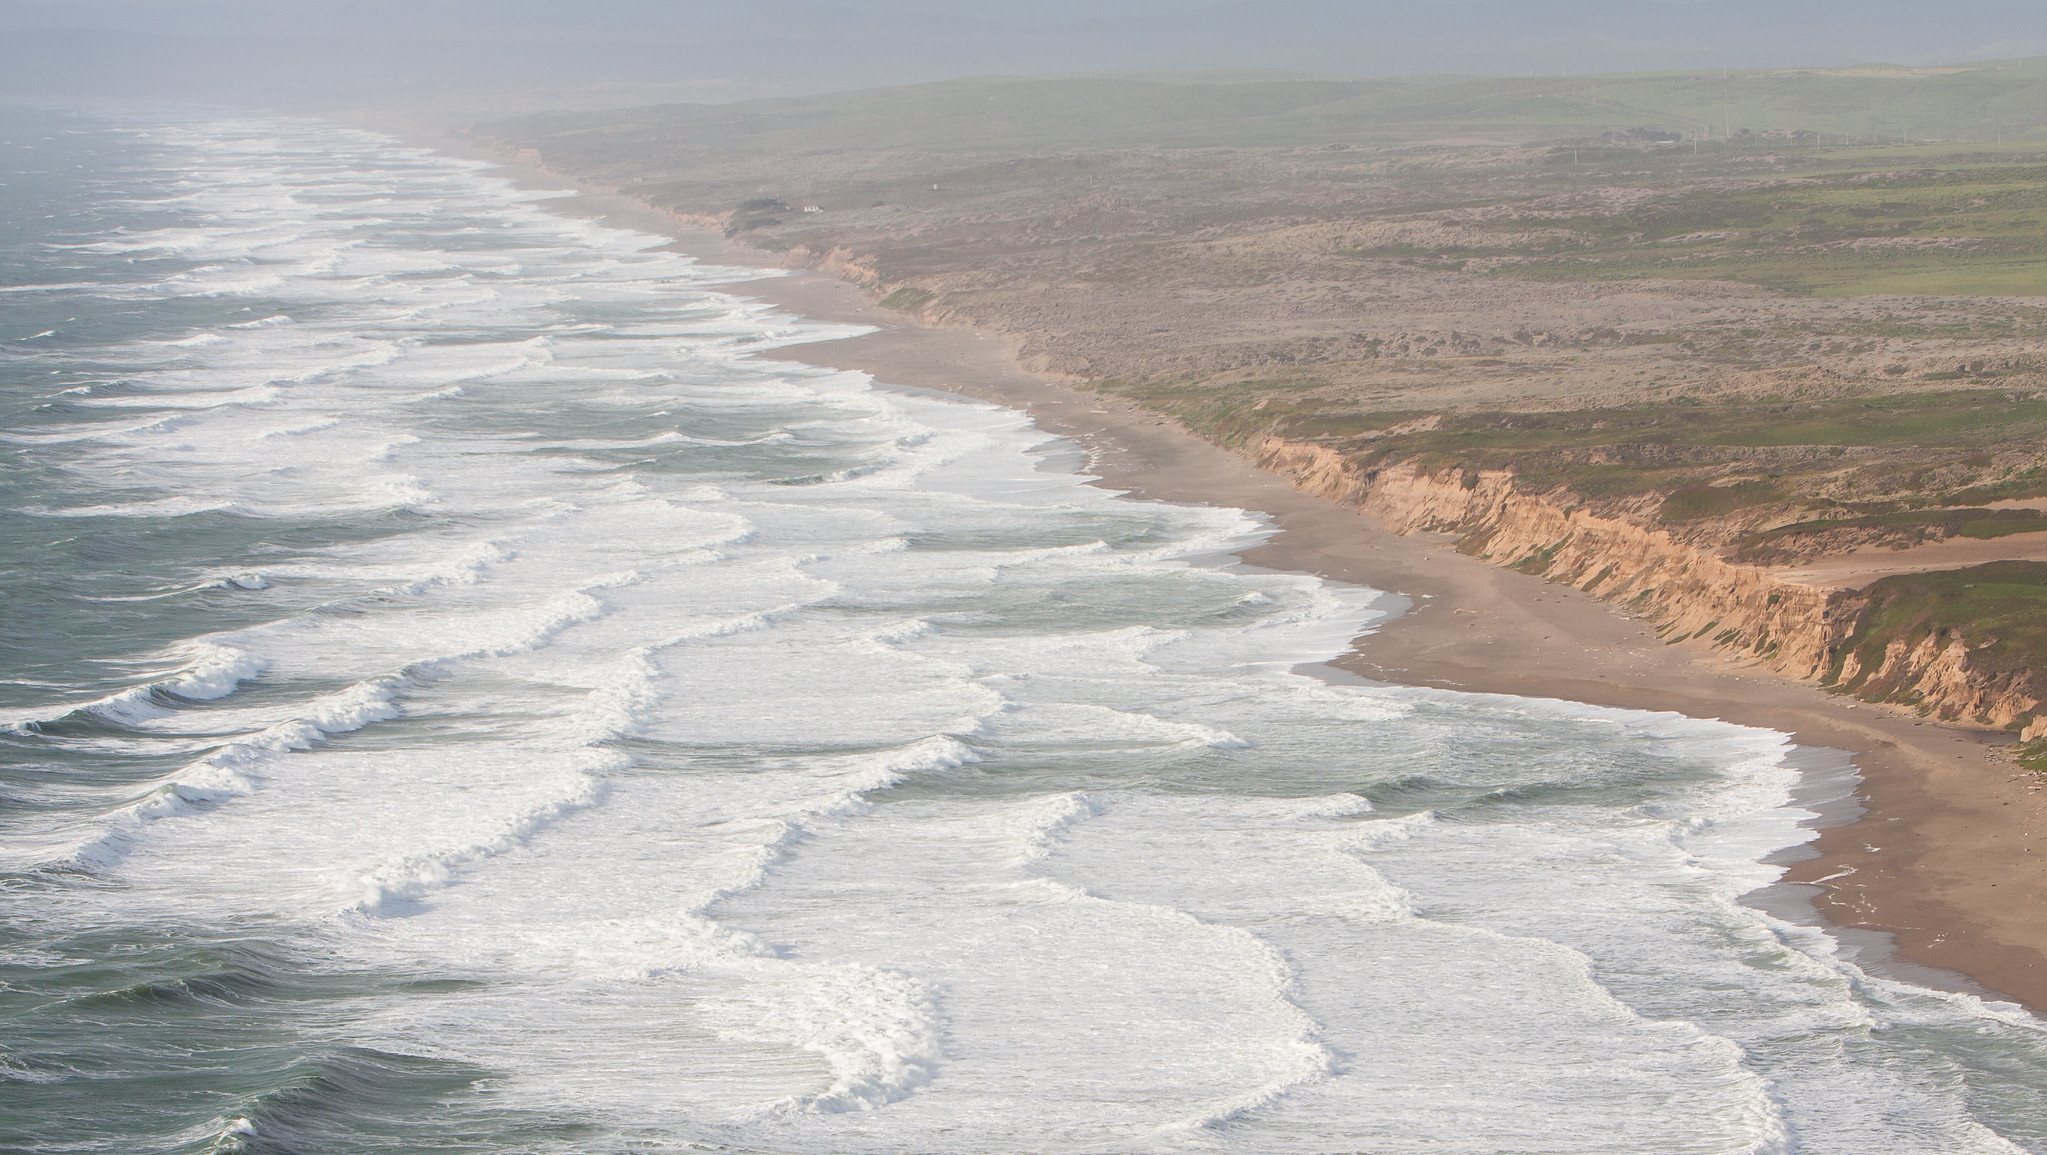 Waves at Point Reyes